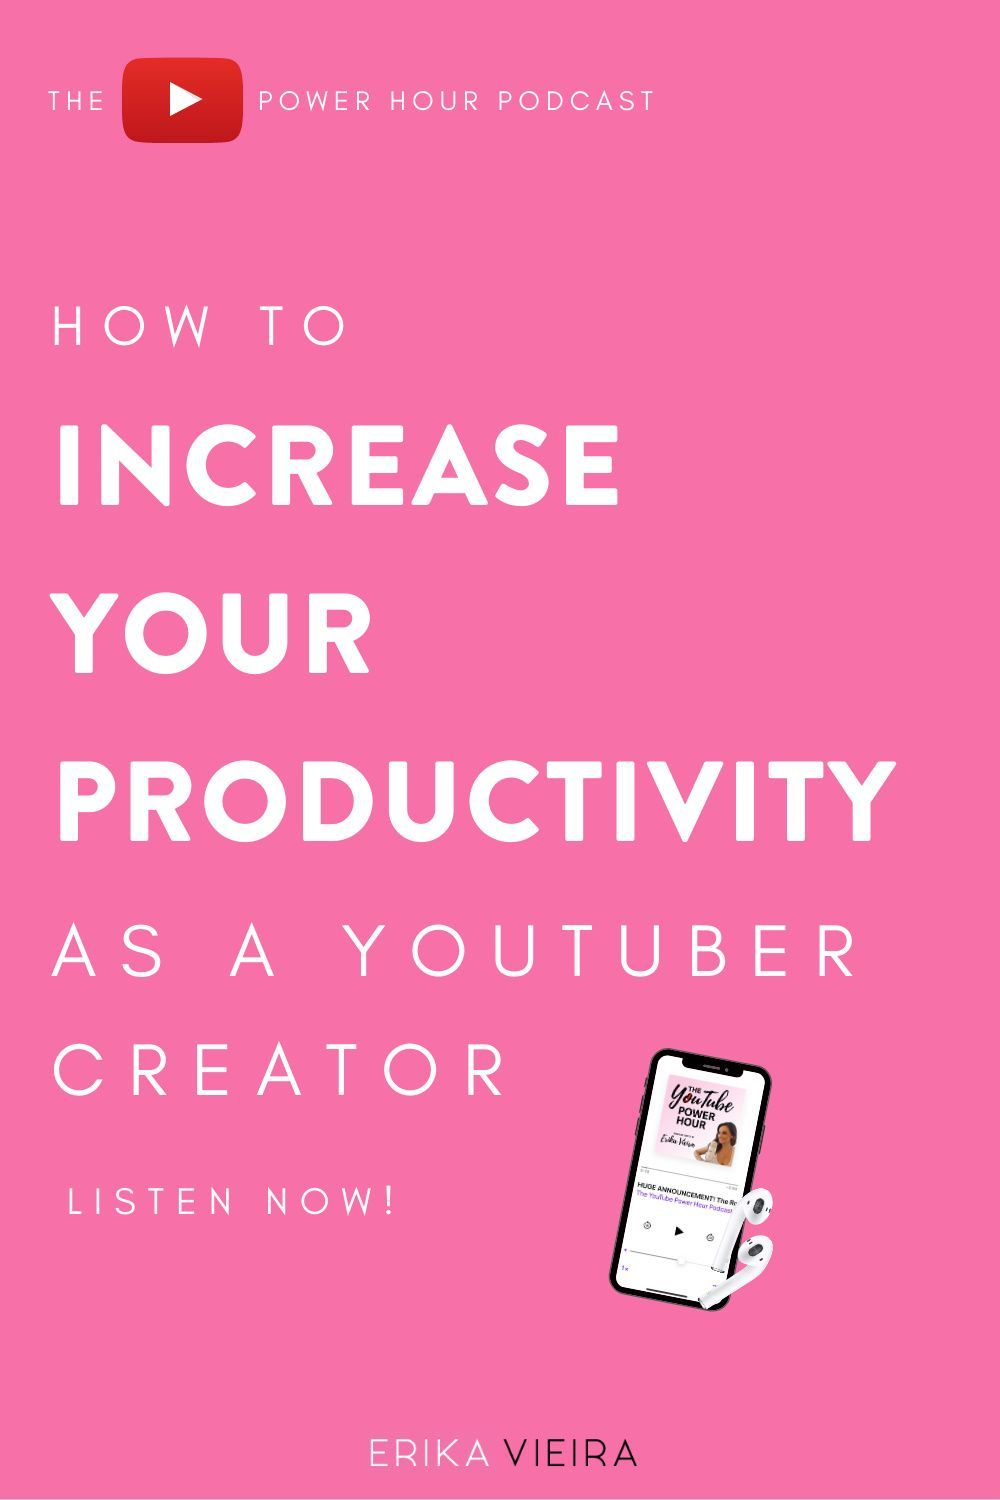 How to be more productive today! Start growing your